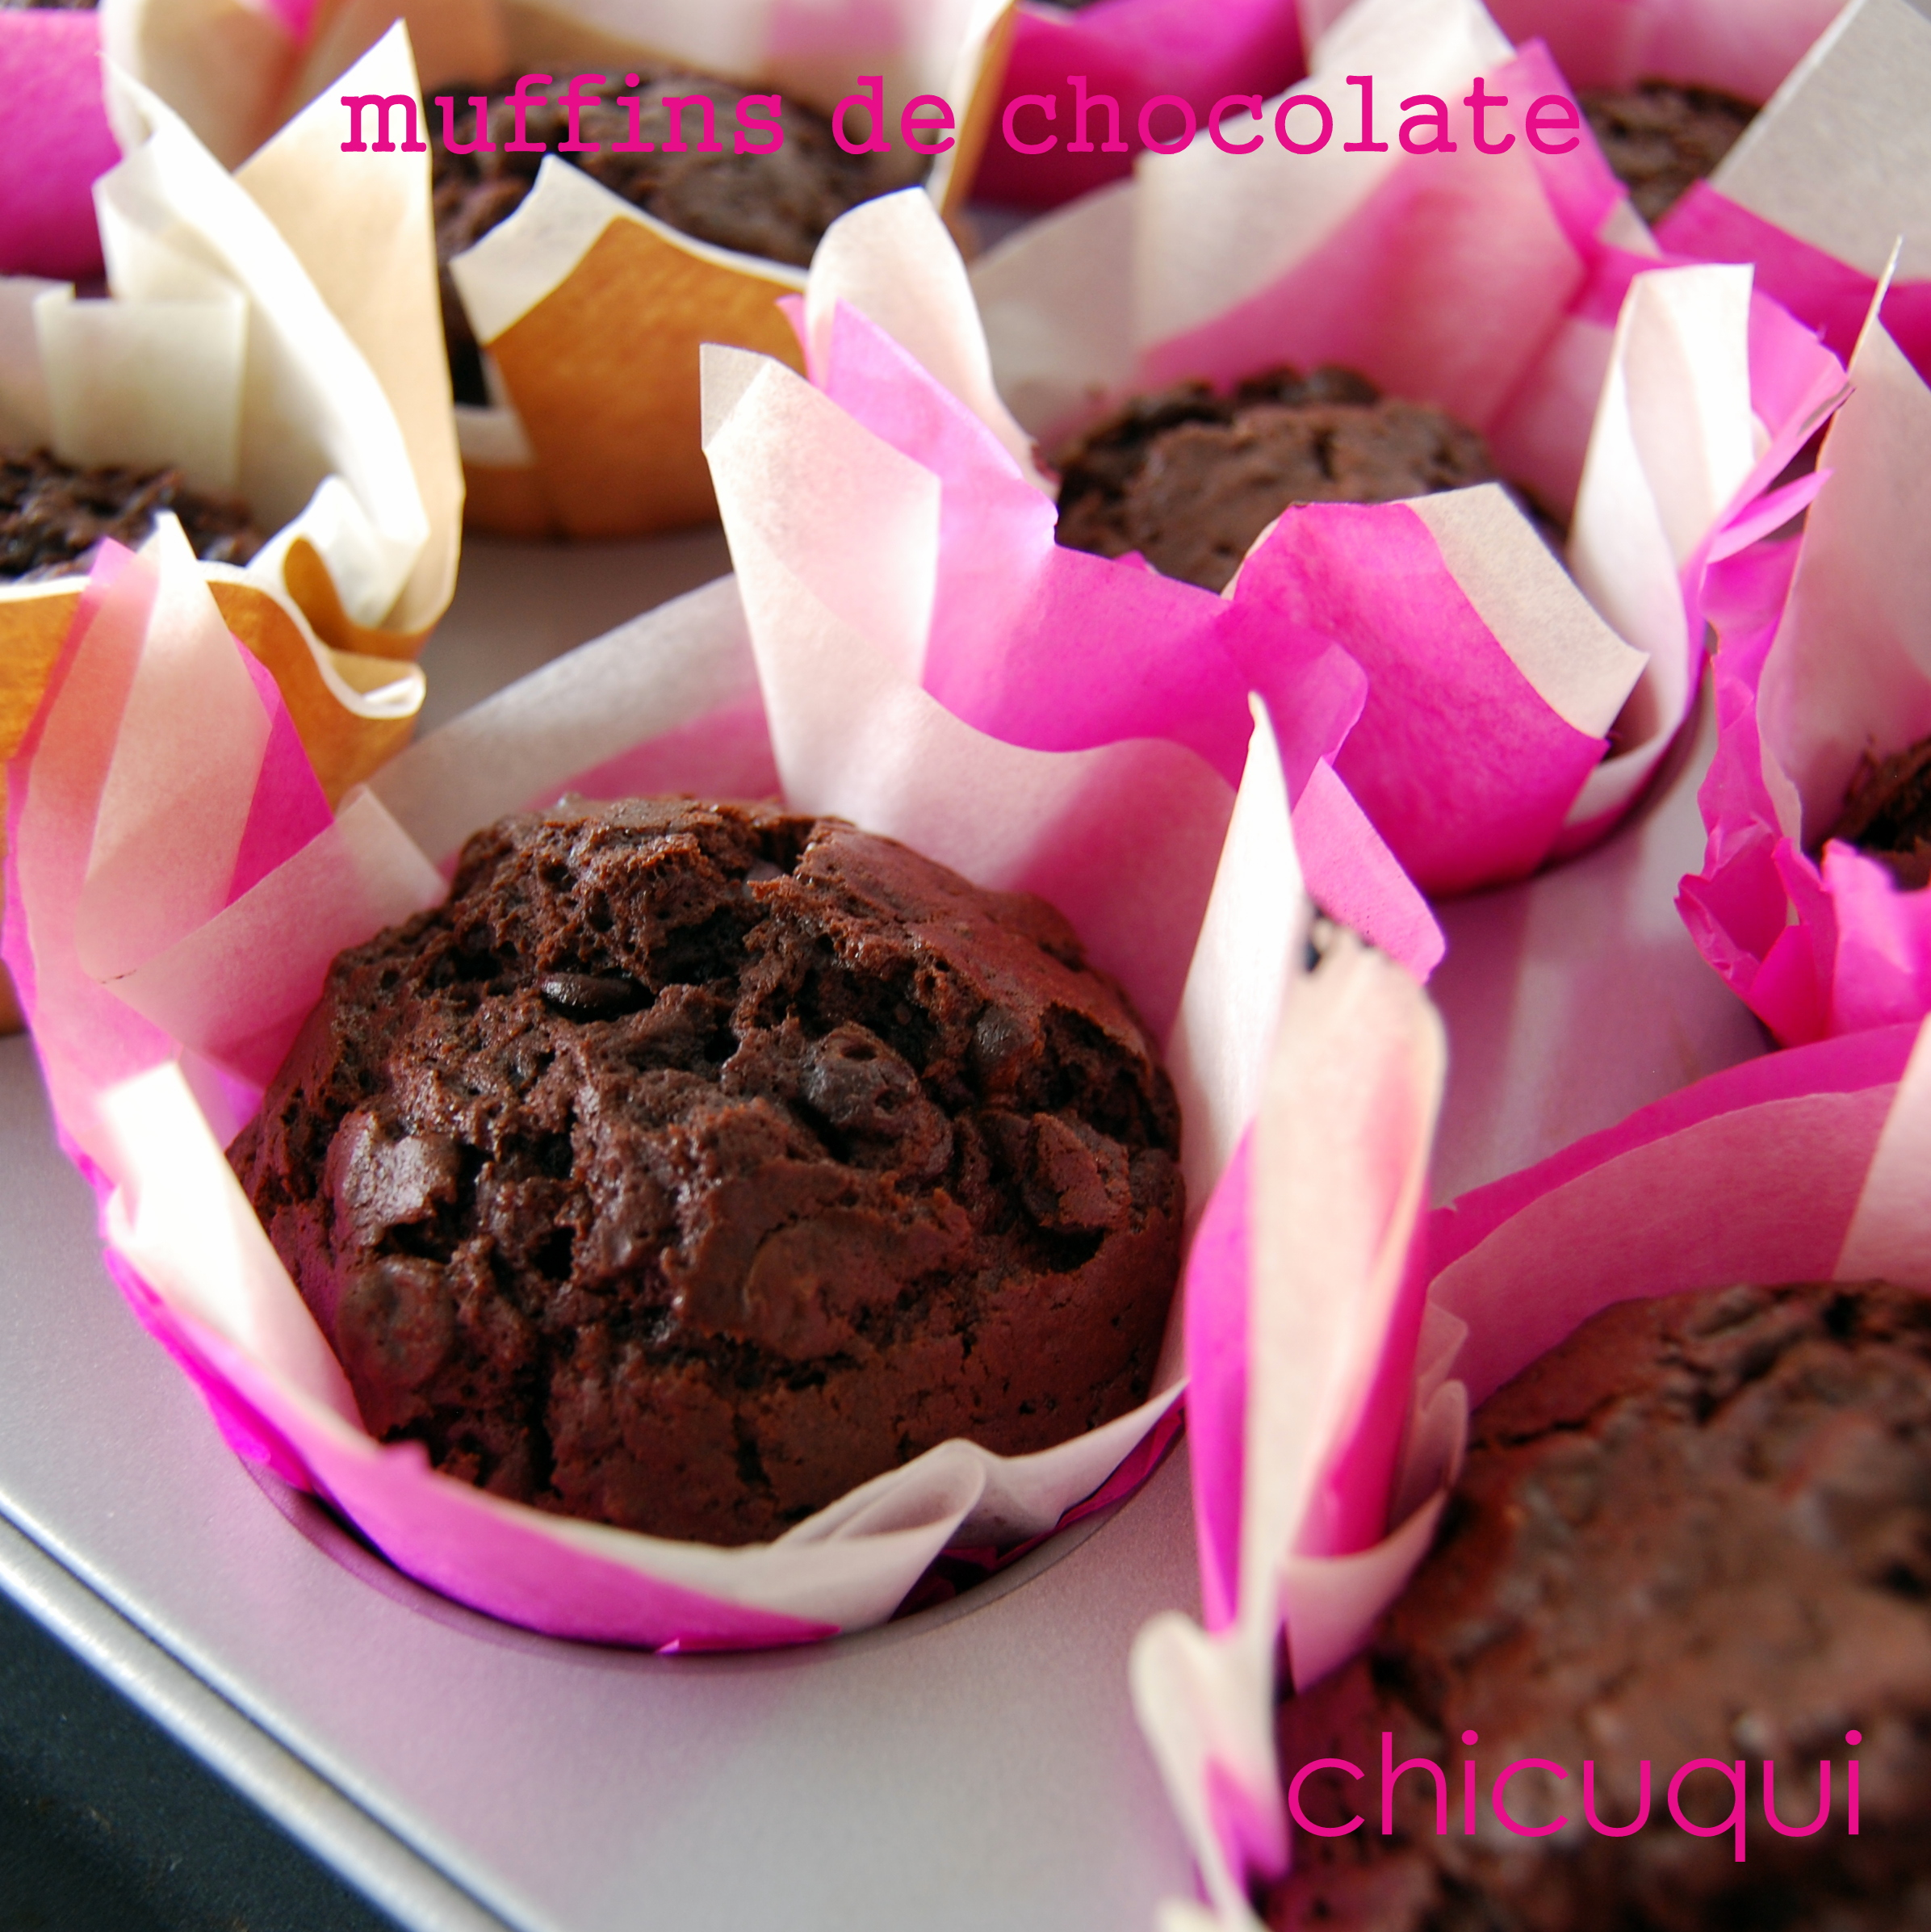 Canal Cocina Chocolate Muffins De Chocolate